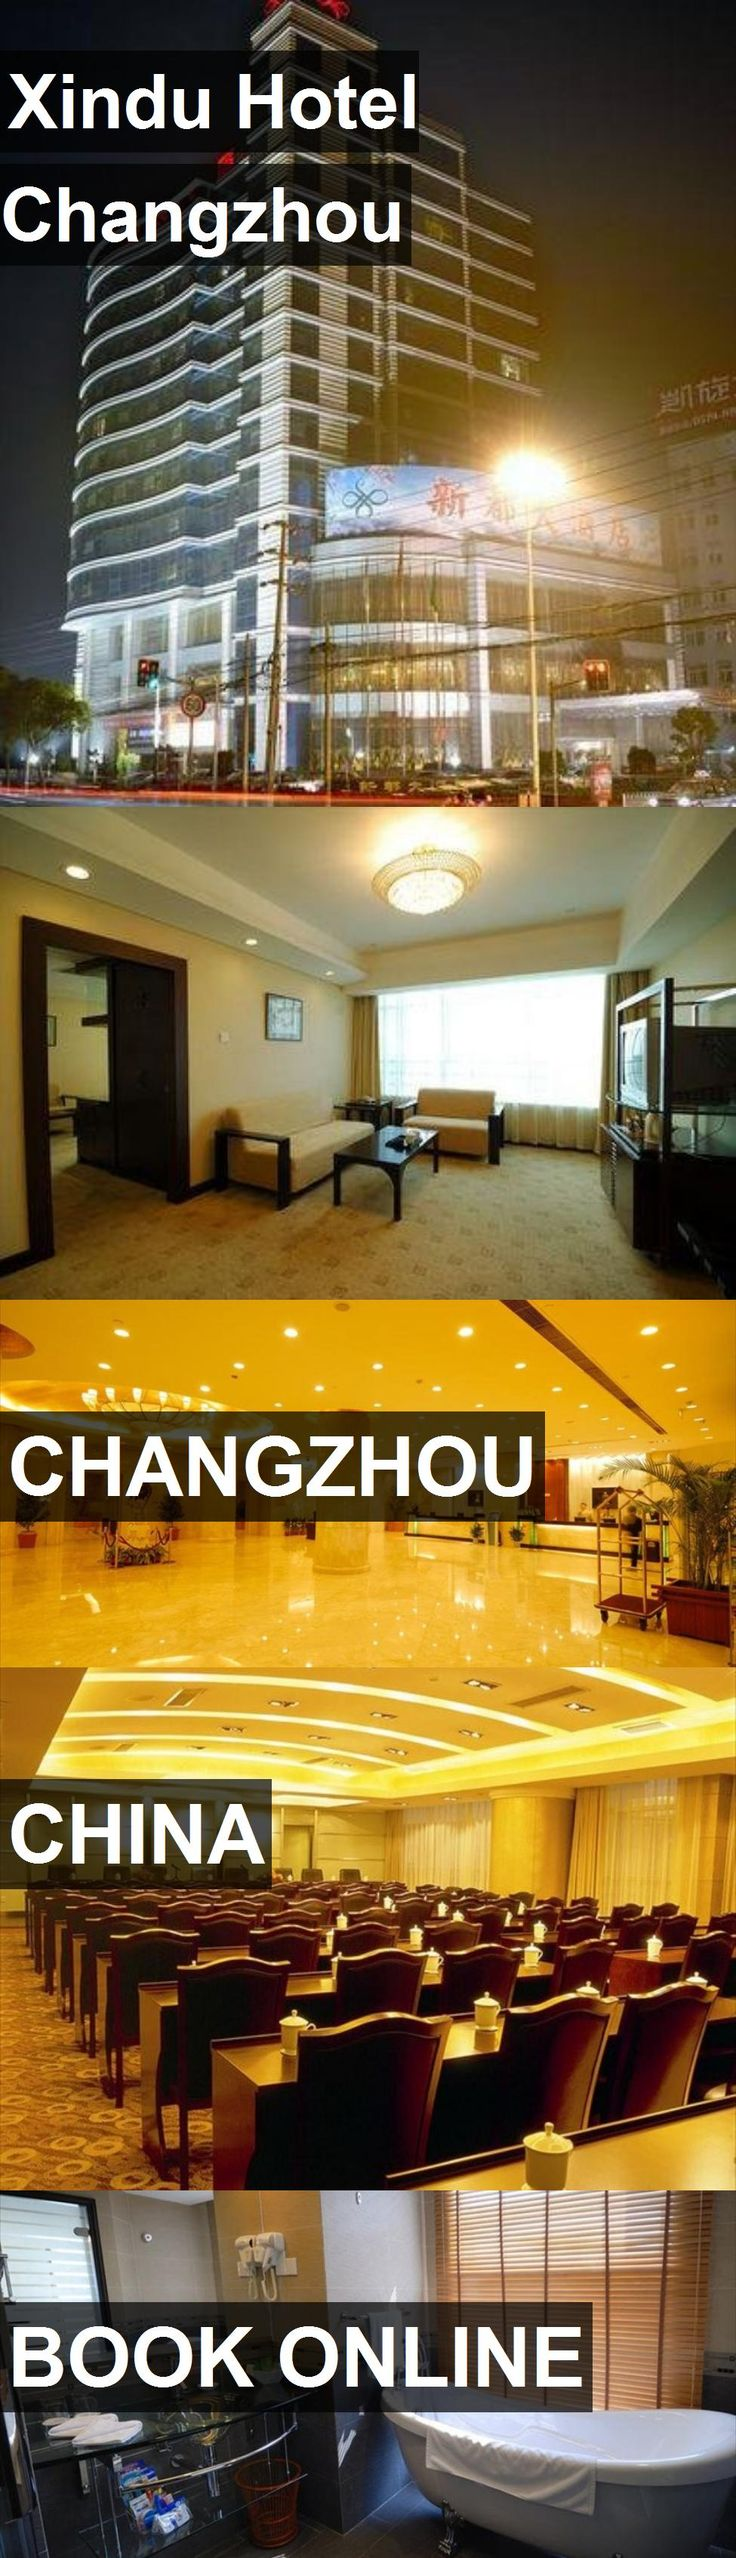 Hotel Xindu Hotel Changzhou in Changzhou, China. For more information, photos, reviews and best prices please follow the link. #China #Changzhou #XinduHotelChangzhou #hotel #travel #vacation